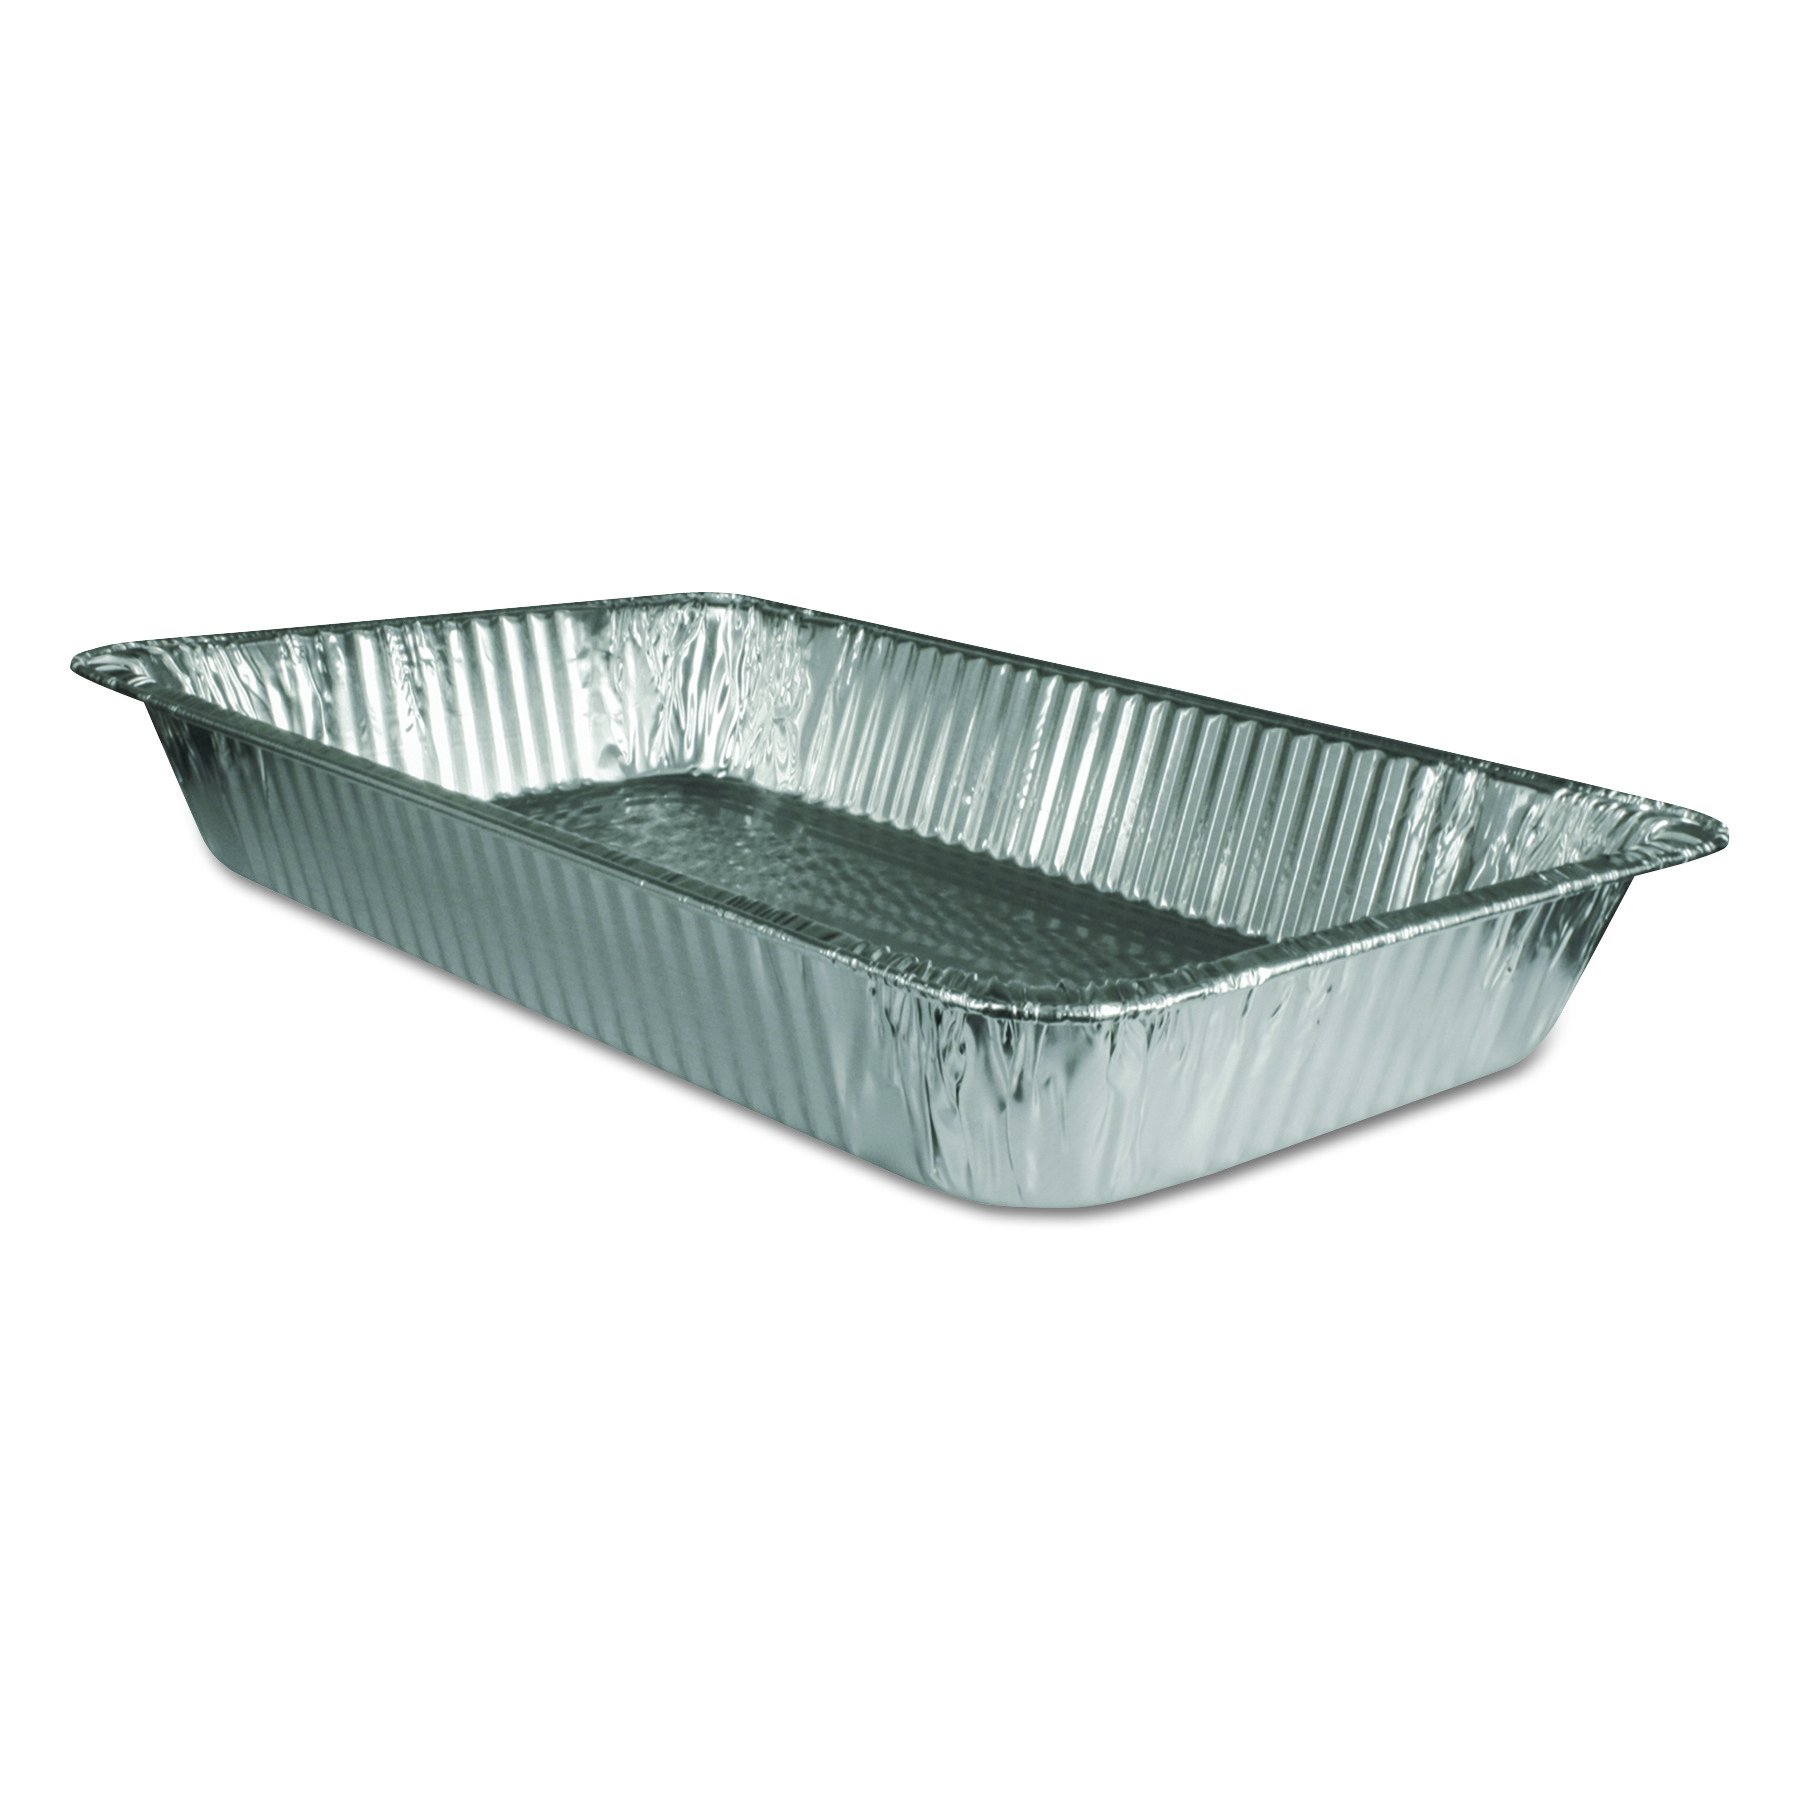 Handi-Foil of America 20197050U Steam Table Aluminum Pan, Full-Size, 3 3/16'' Deep (Case of 50) by HFA